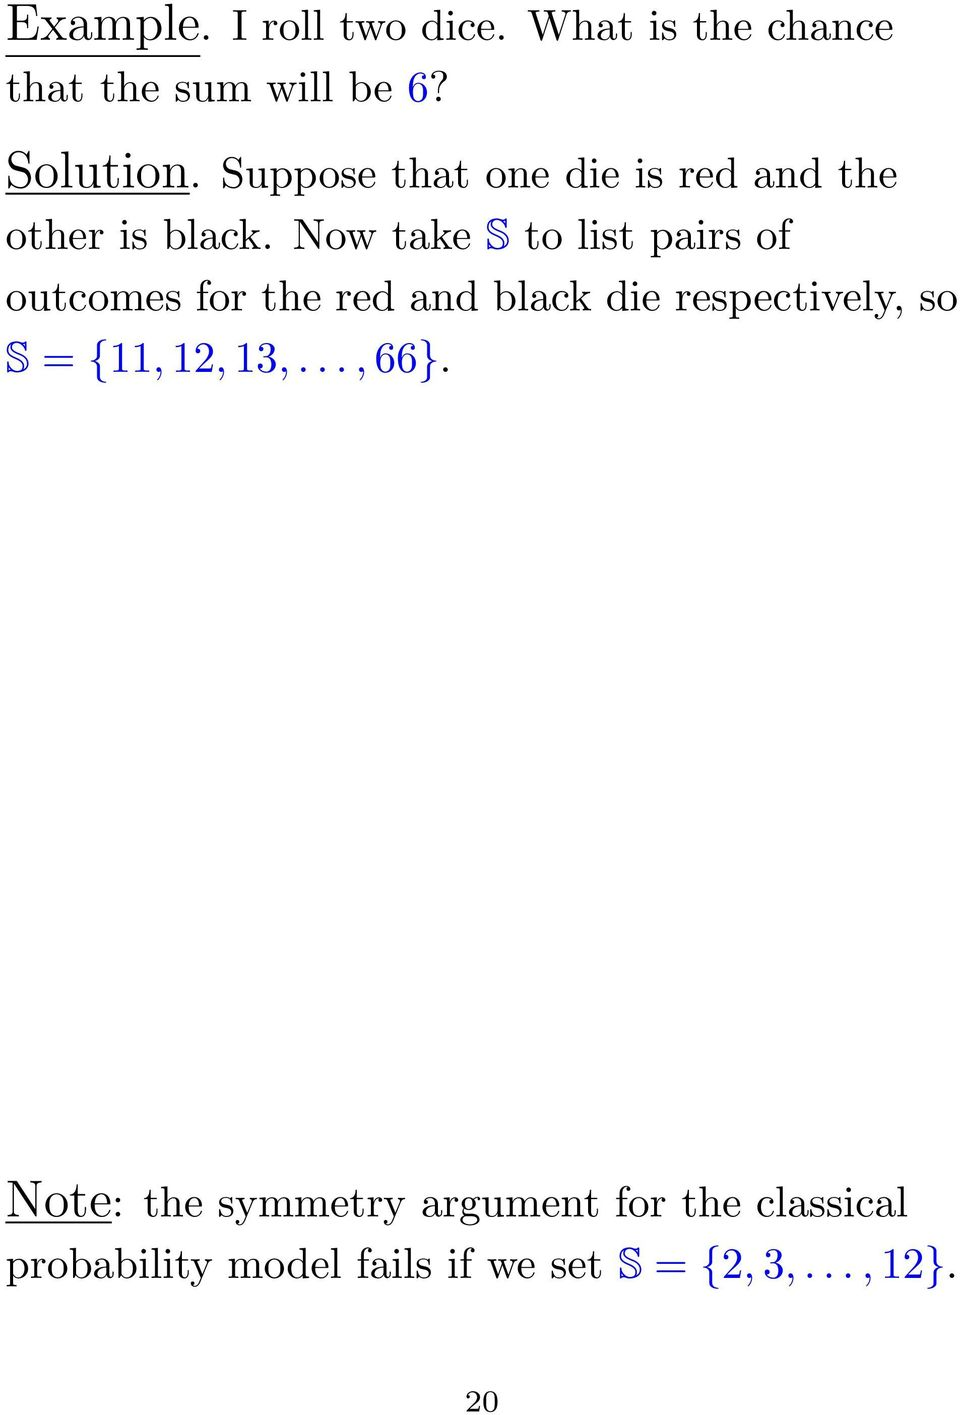 Now take S to list pairs of outcomes for the red and black die respectively, so S =